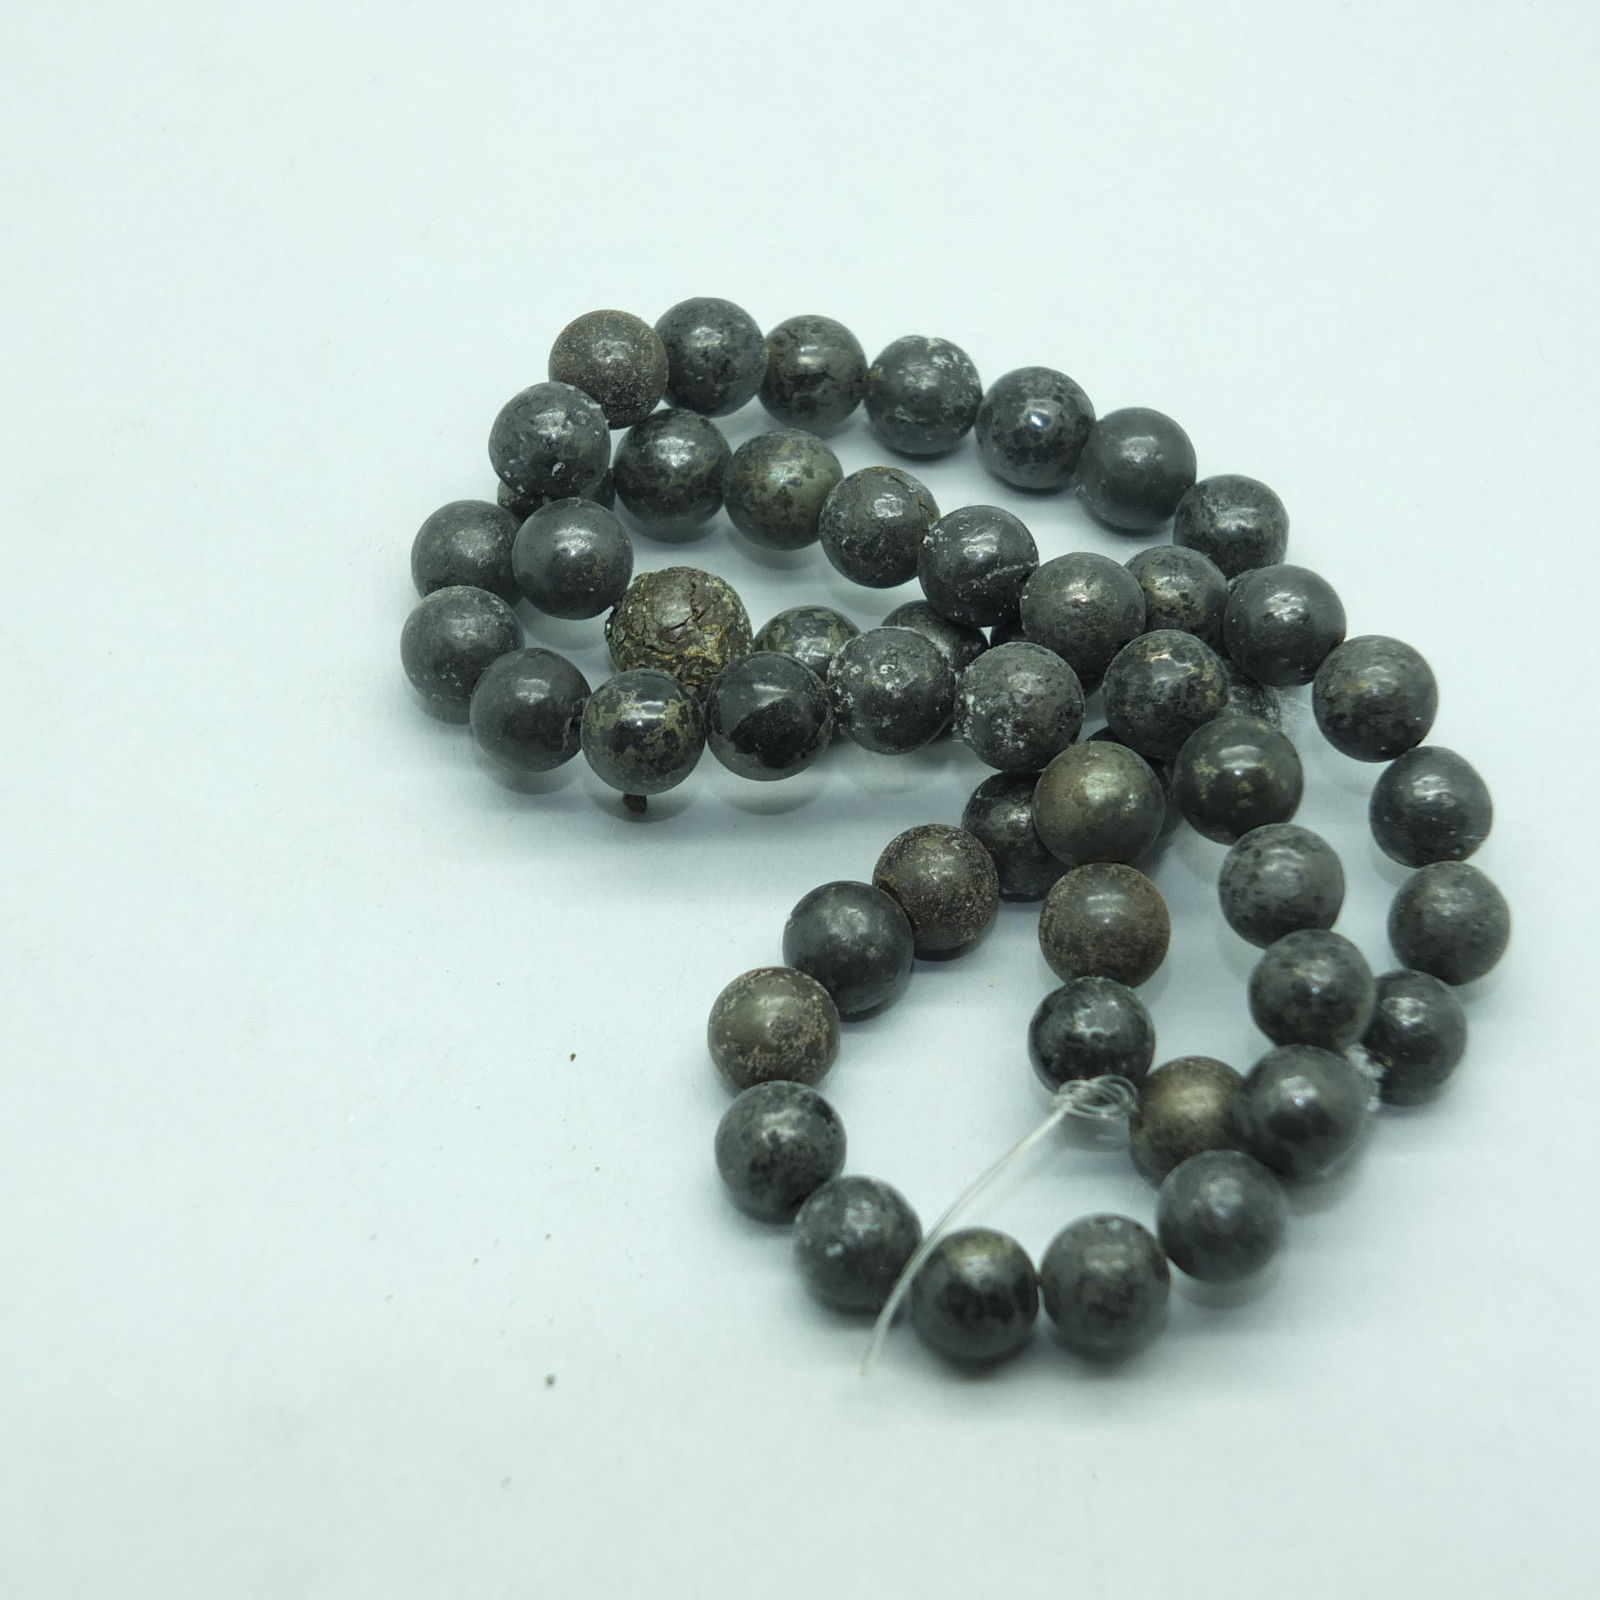 Primary image for 8mm Pyrite Semi Precious Stone Gem Beads